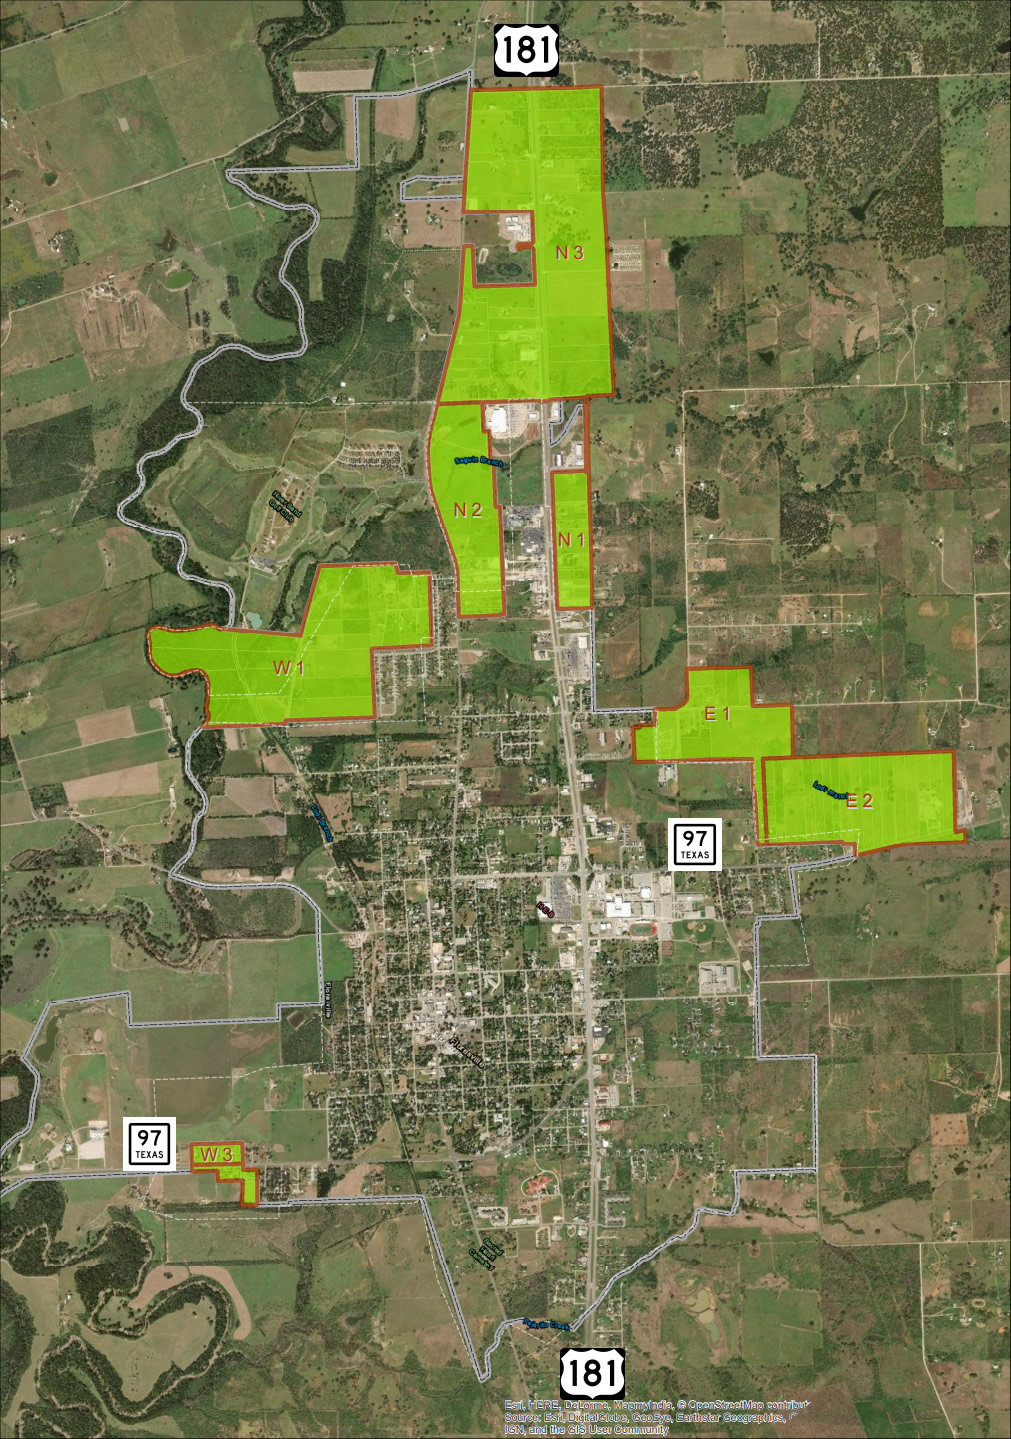 2019 Municipal Annexation Plan Map Final Approved